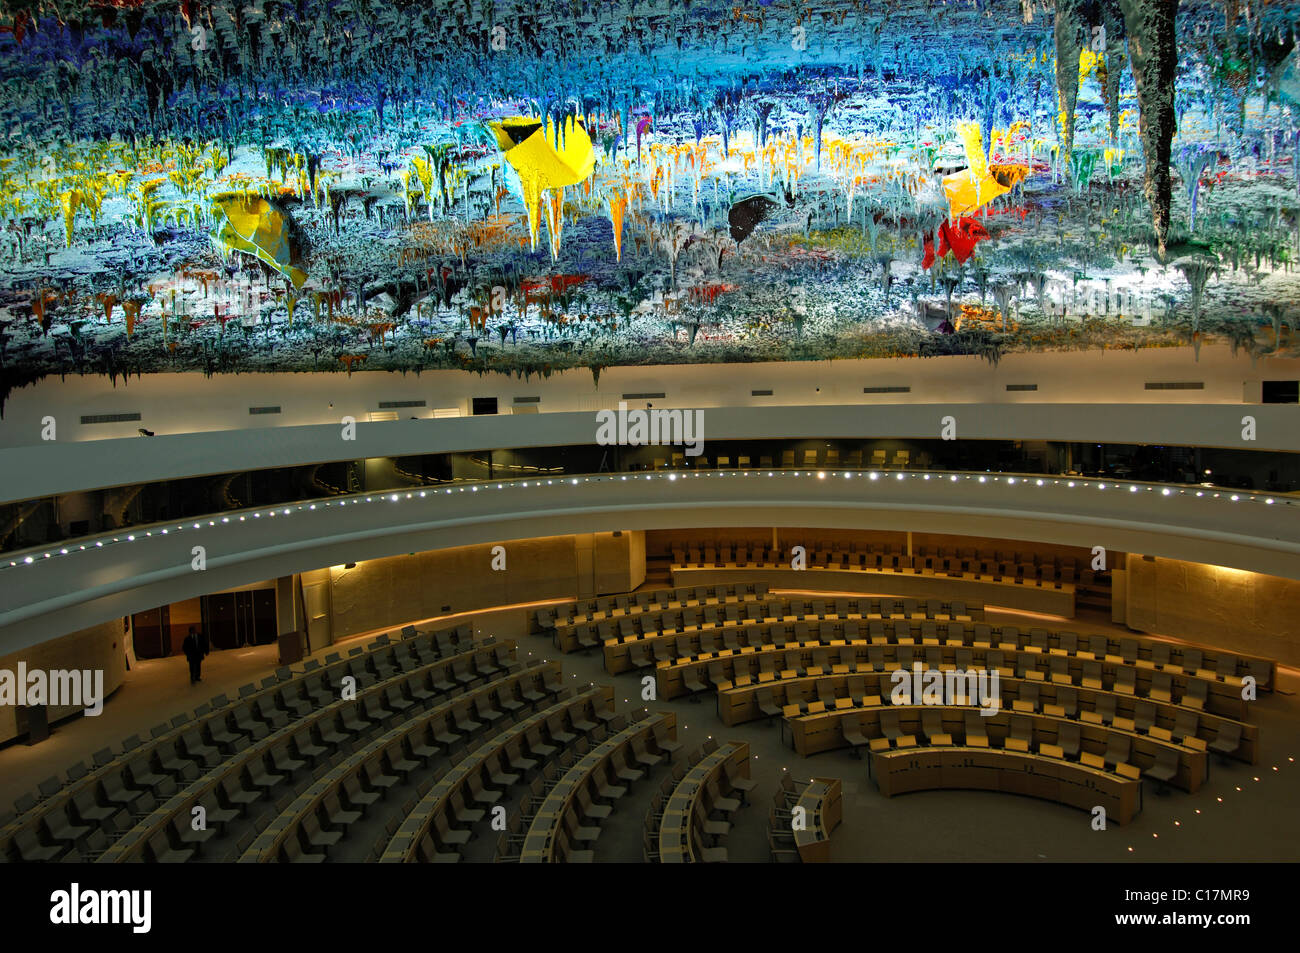 Human Rights and Alliance of Civilizations Room at the Palais des Nations, domed ceiling designed by Miquel Barcelo, - Stock Image